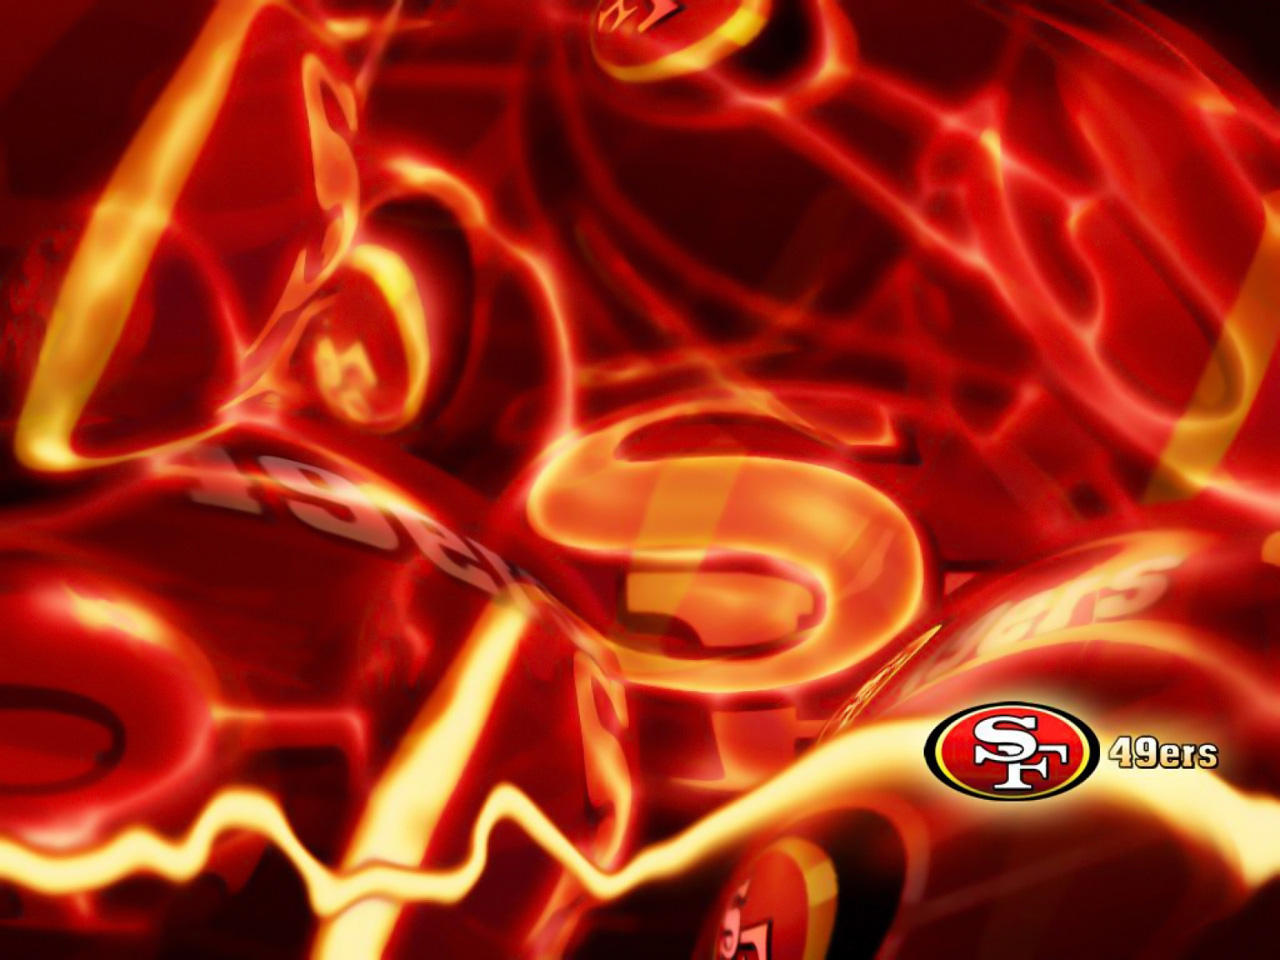 Francisco 49ers wallpaper background San Francisco 49ers wallpapers 1280x960